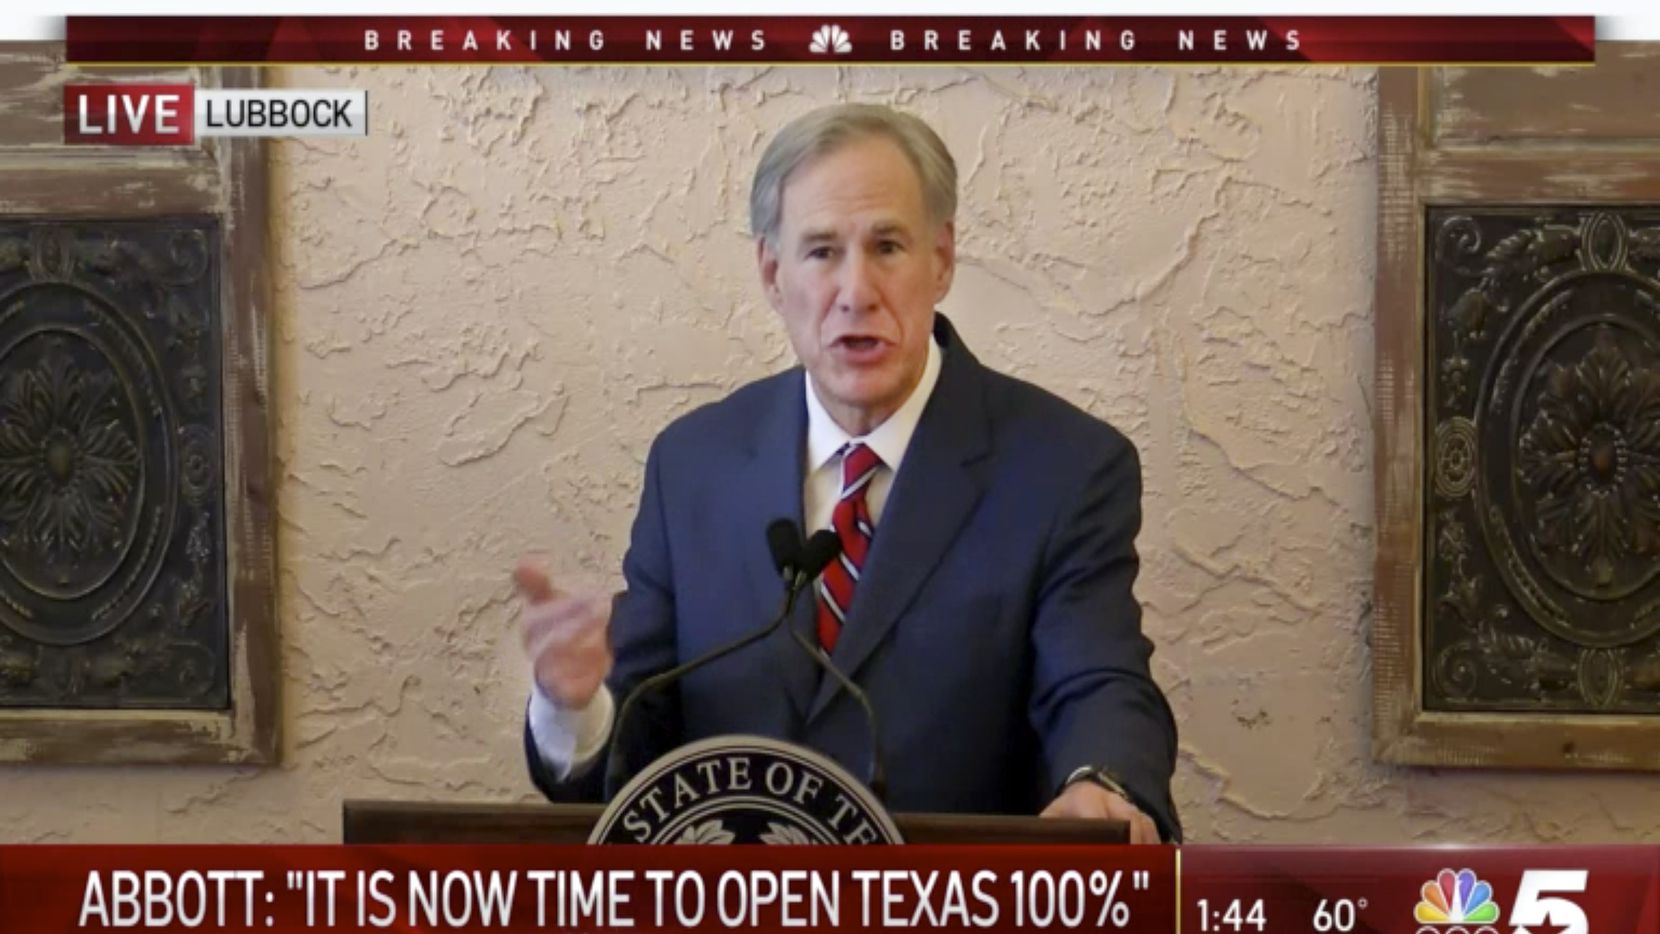 Texas Governor Greg Abbott delivers a speech  at a Lubbock restaurant, Tuesday, March 2, 2021. Coming up on the one-year anniversary of the COVID-19 pandemic, Abbott announced reopening the State of Texas to all businesses. He also wants to end the statewide mask mandate. (video via KXAS Dallas)